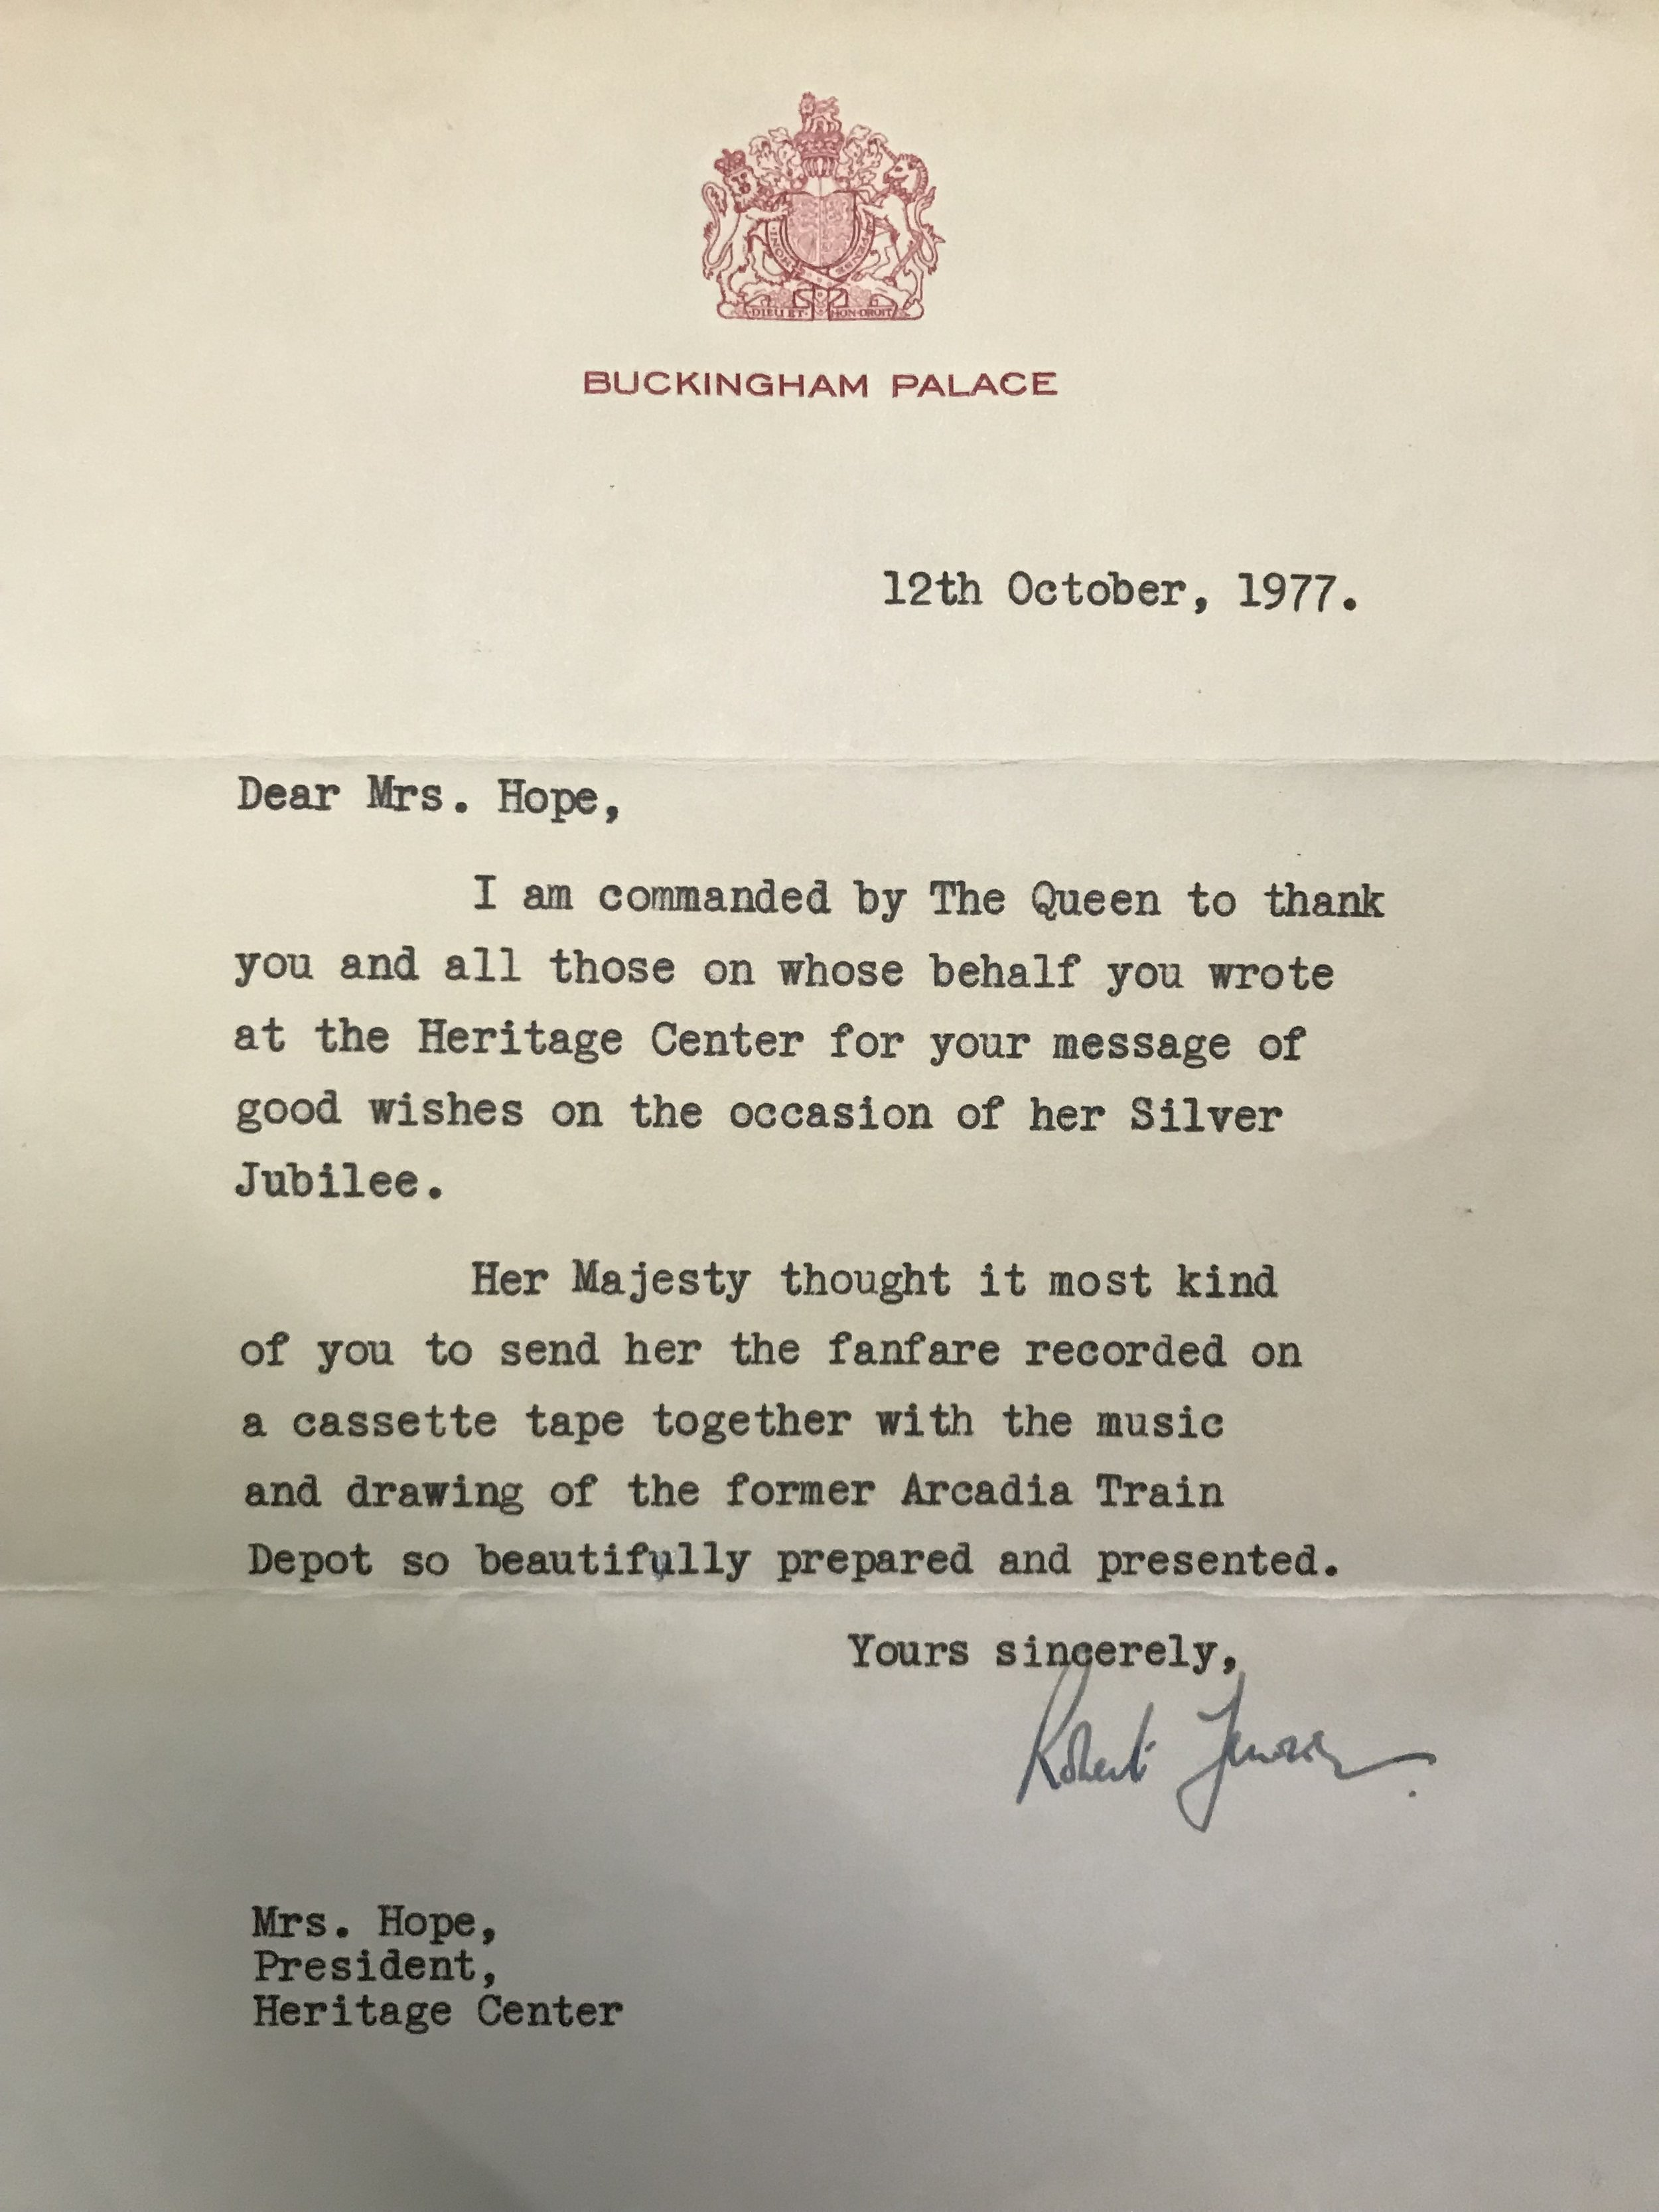 - A thank you letter from the Queen.